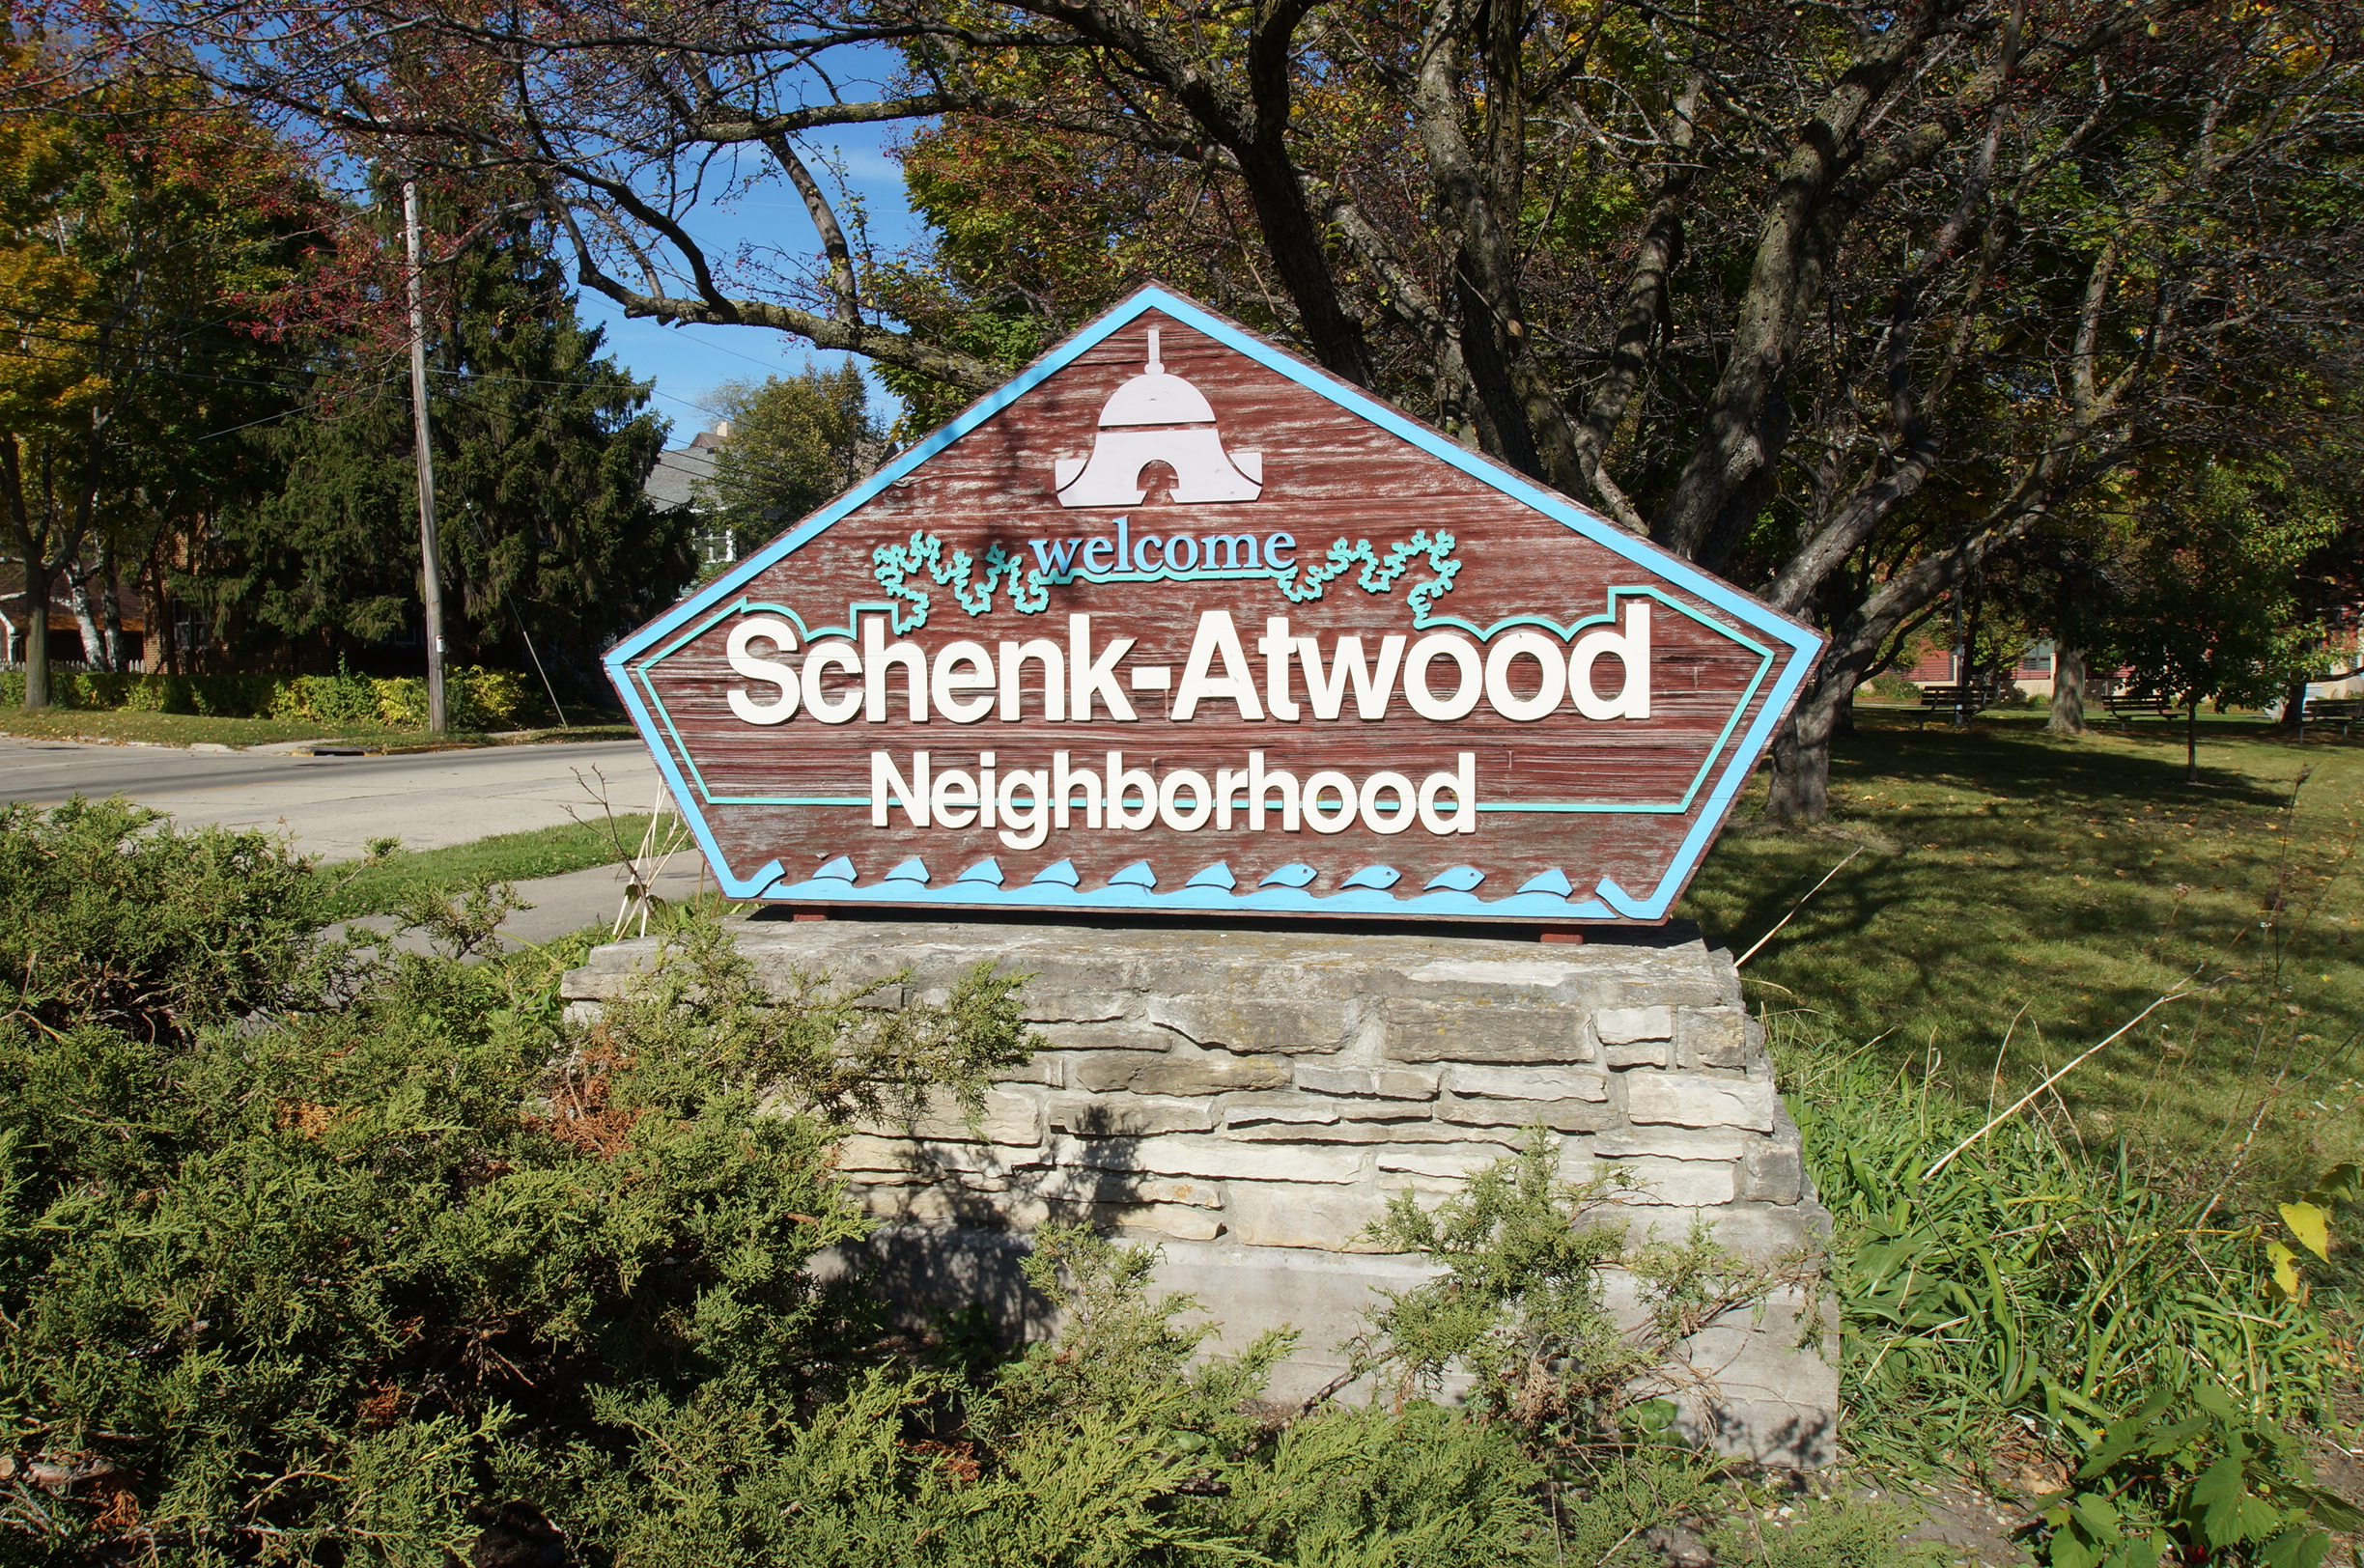 Schenk Atwood neighborhood sign